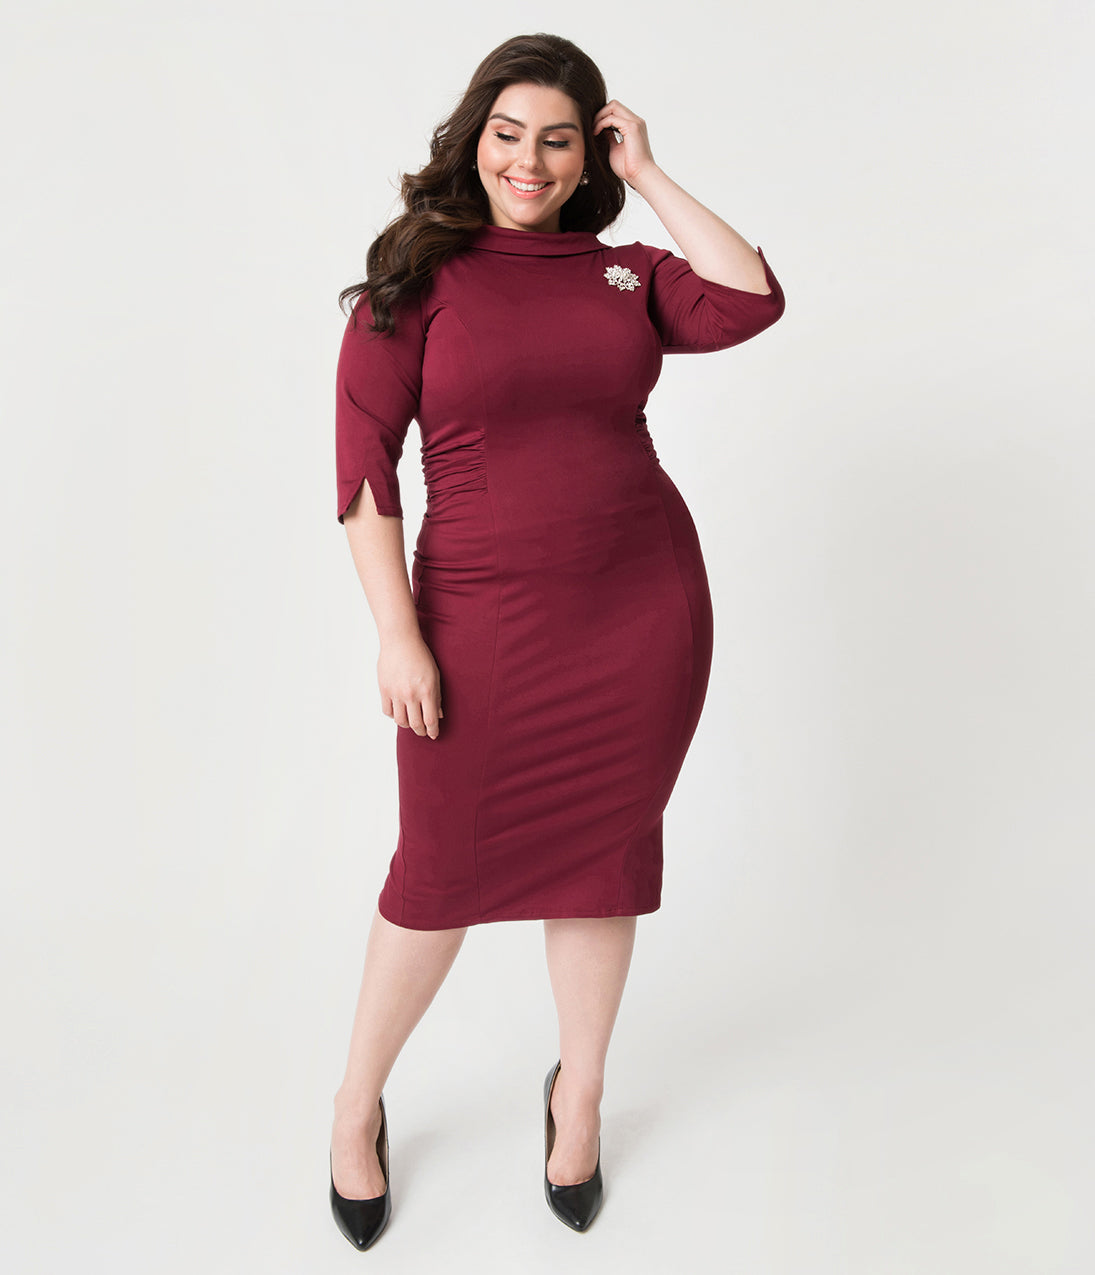 1950s Plus Size Dresses, Clothing and Costumes Unique Vintage Plus Size 1960S Burgundy Red Stretch Sleeved Lucinda Wiggle Dress $78.00 AT vintagedancer.com